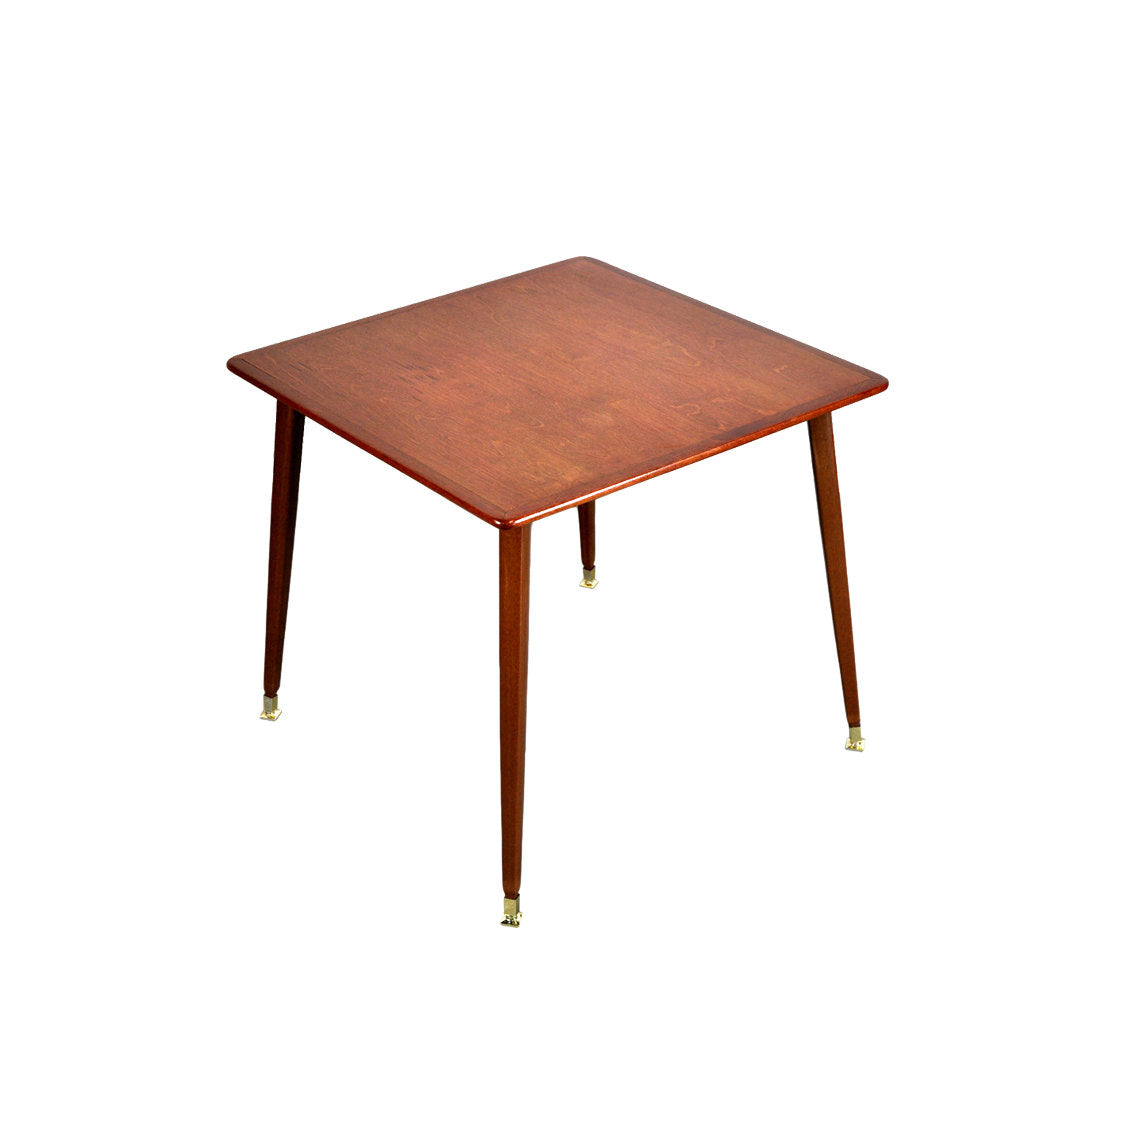 Teak Atomic Occasional Table with Sputnik Legs - AndersBrowne Mid Century Furniture